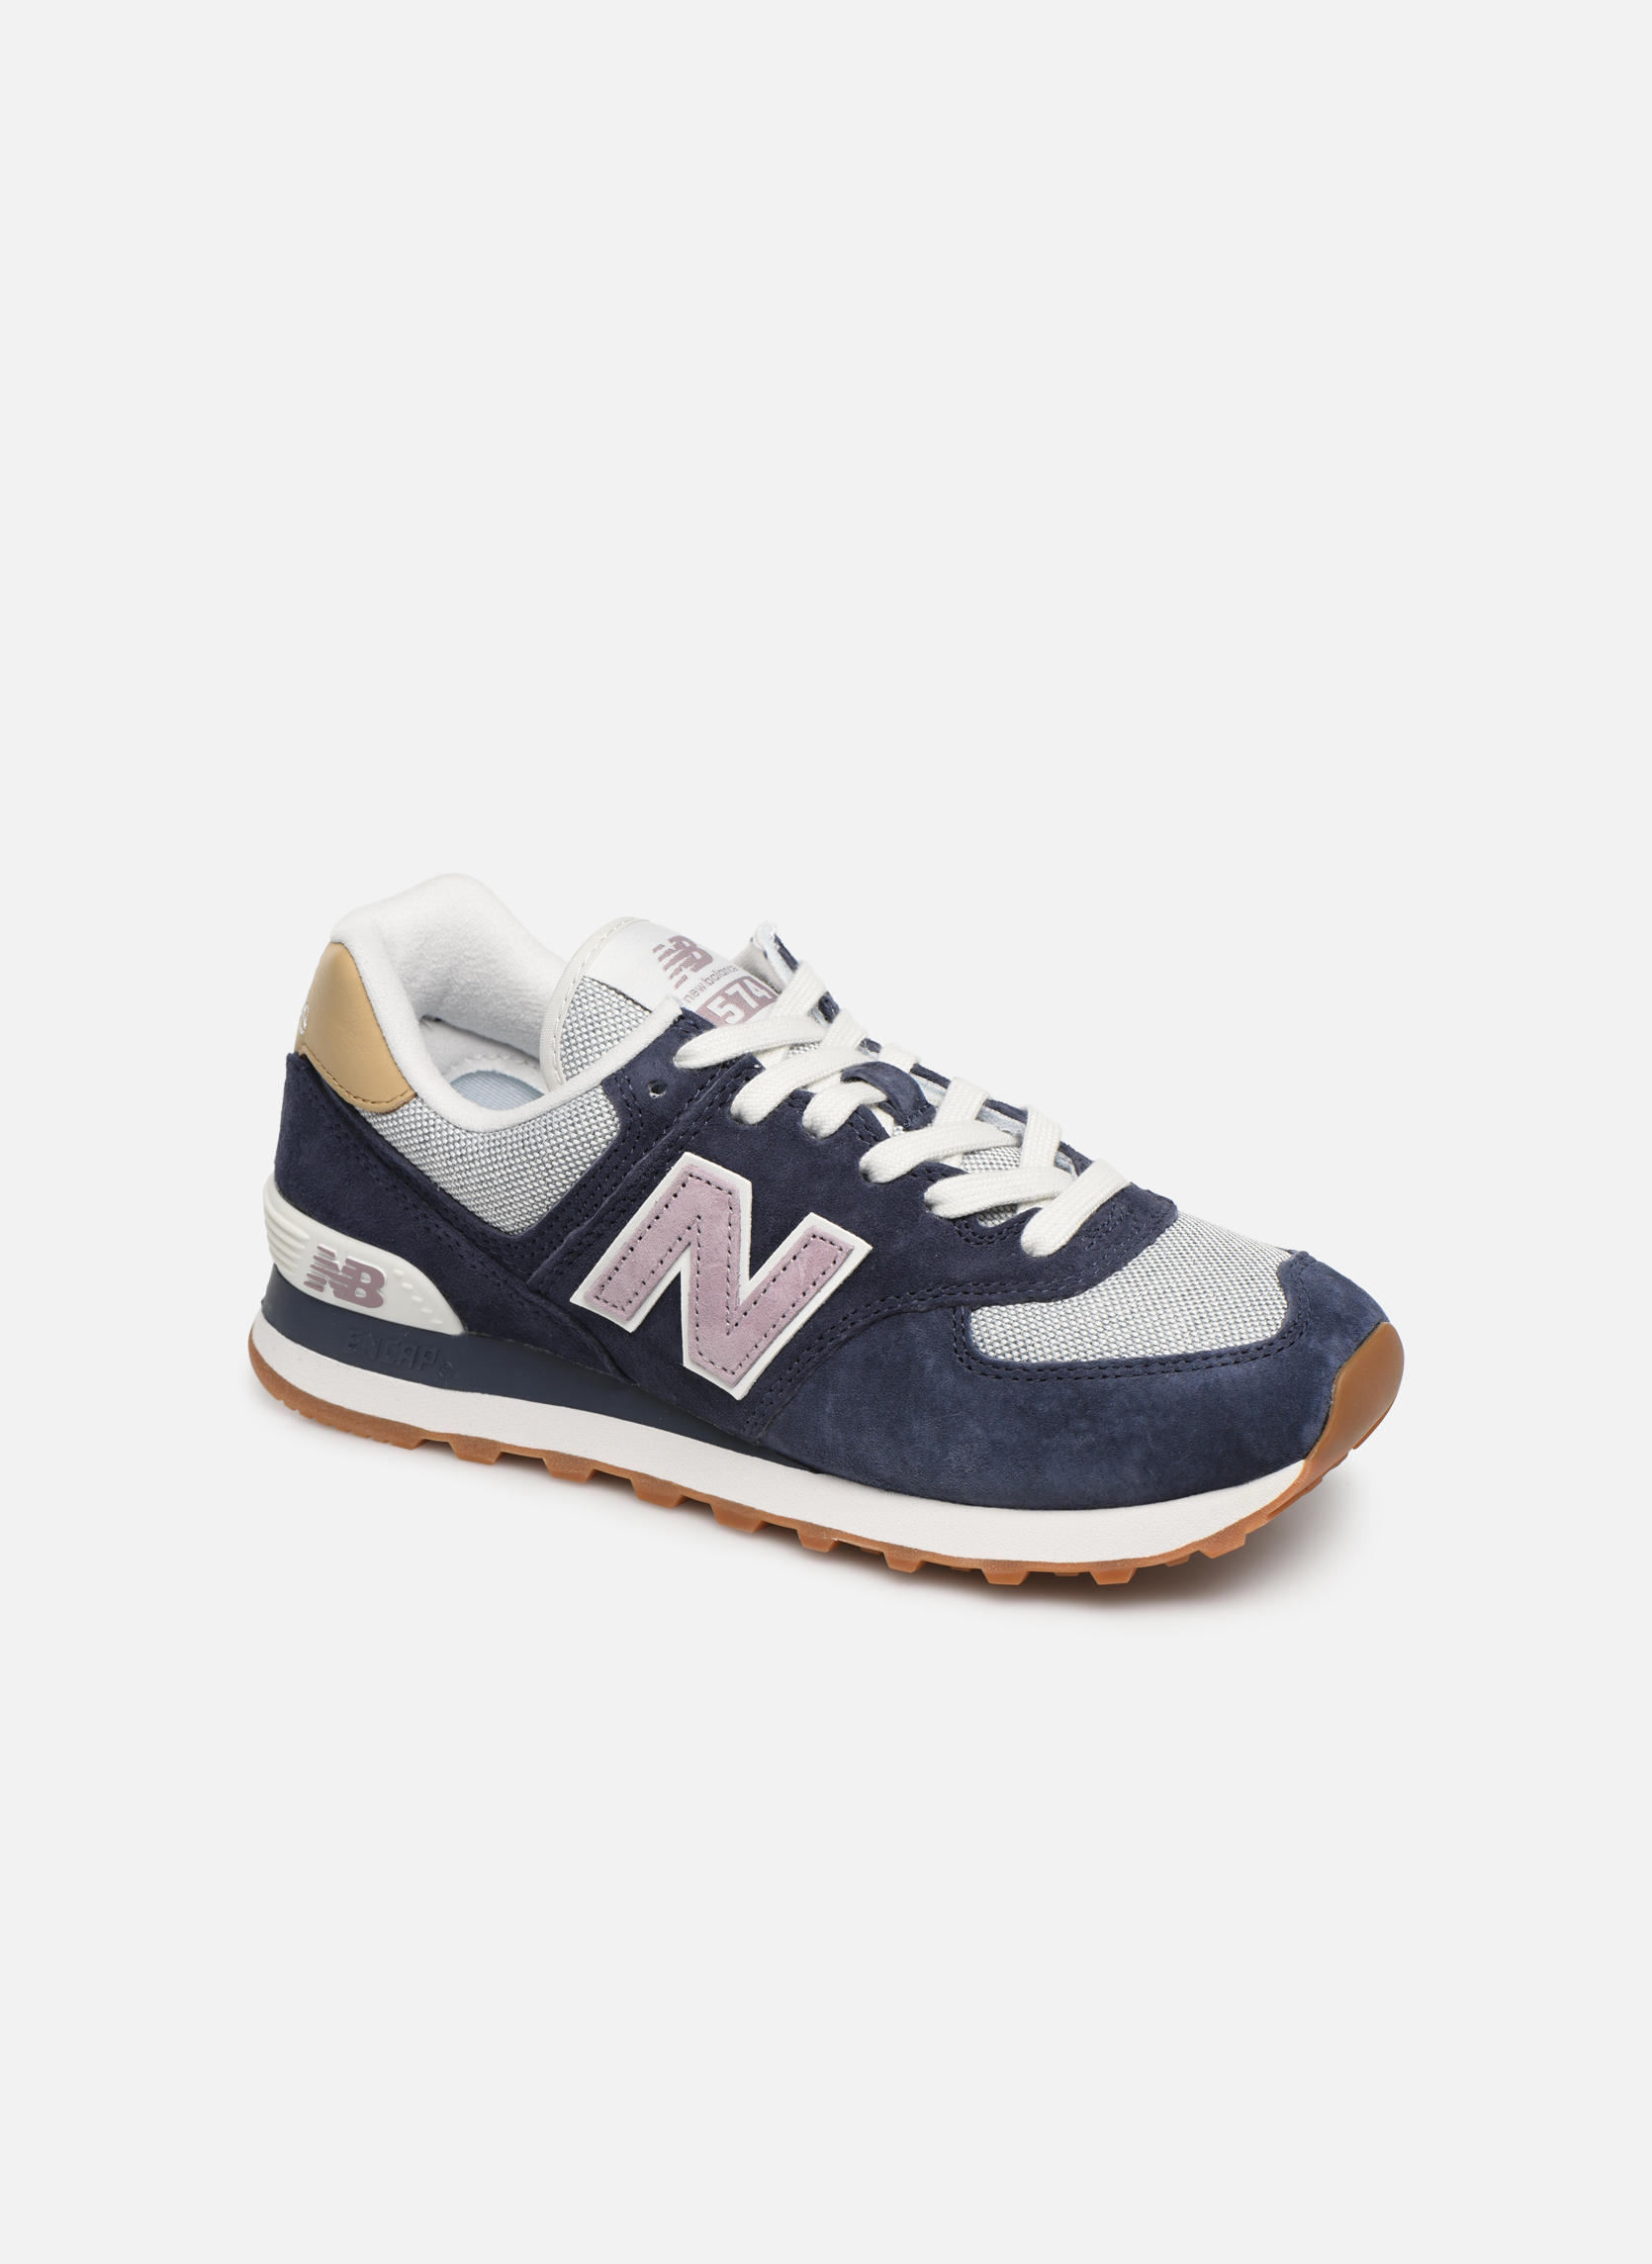 Sneakers WL574 by New Balance